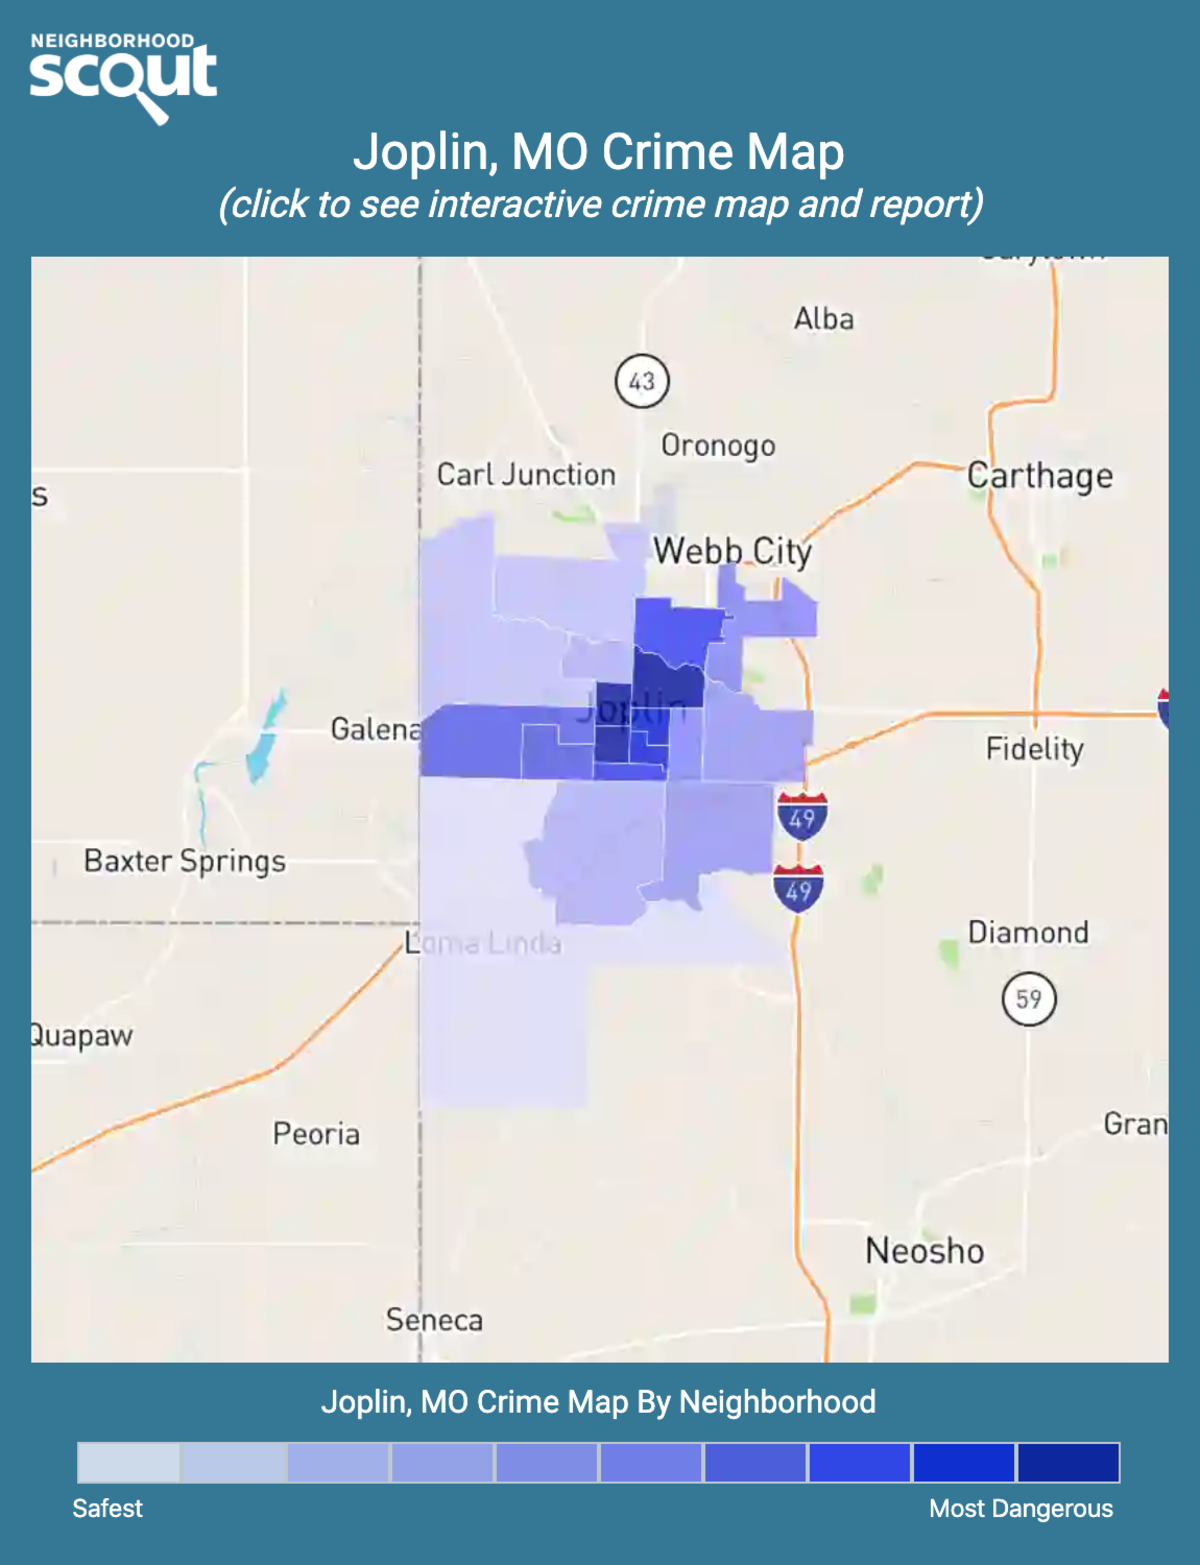 Joplin, Missouri crime map